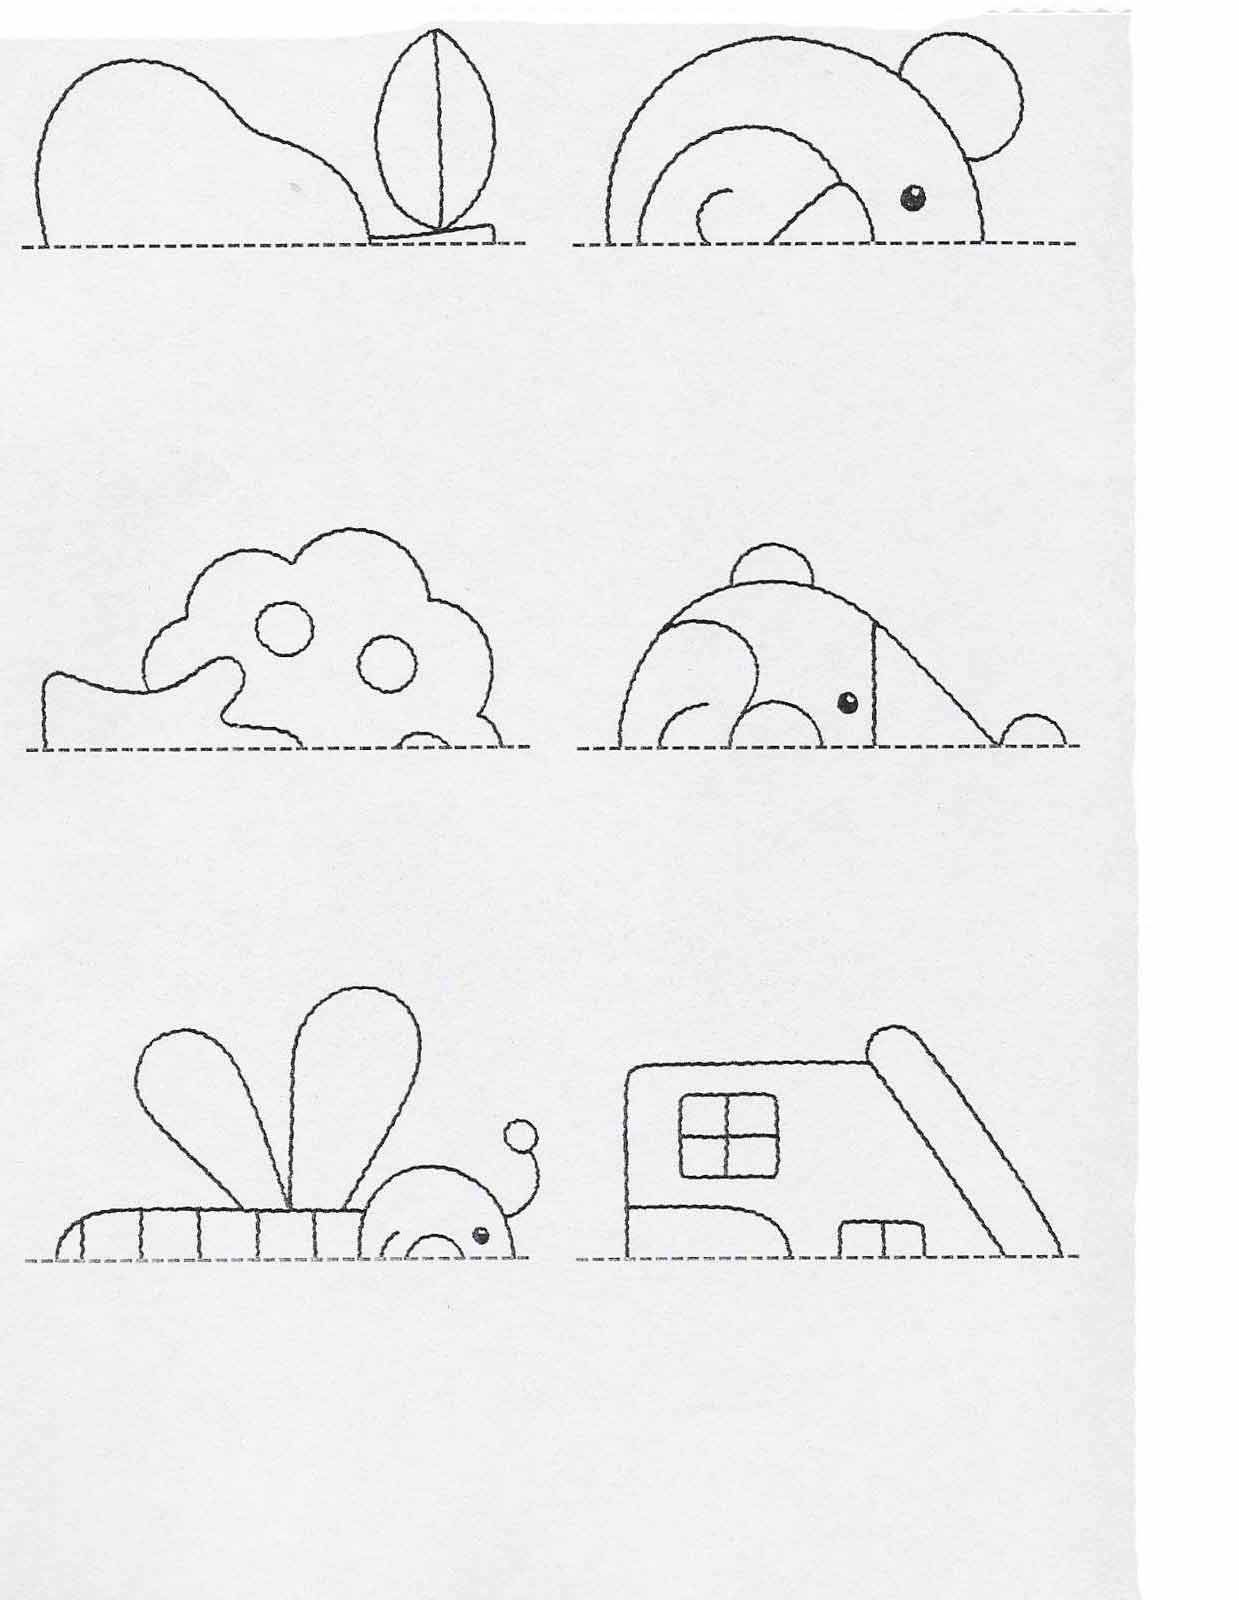 Elementary School Worksheets Complete And Colour 60 School Worksheets Visual Perception Activities Elementary Art Projects